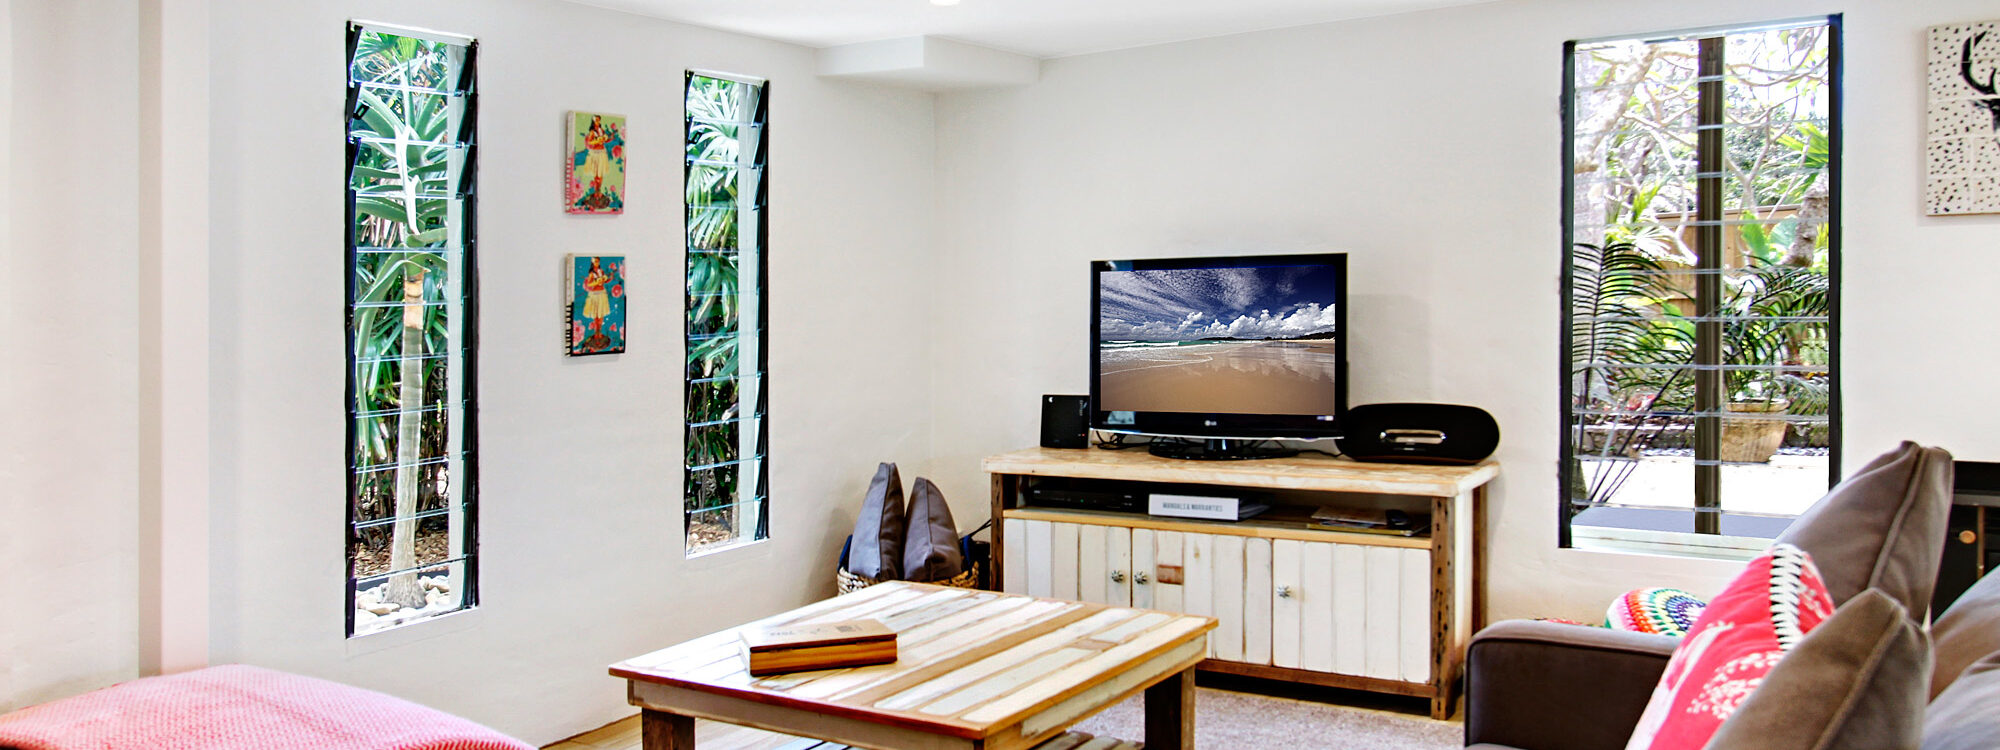 Jimmy's Beach House - Living Area